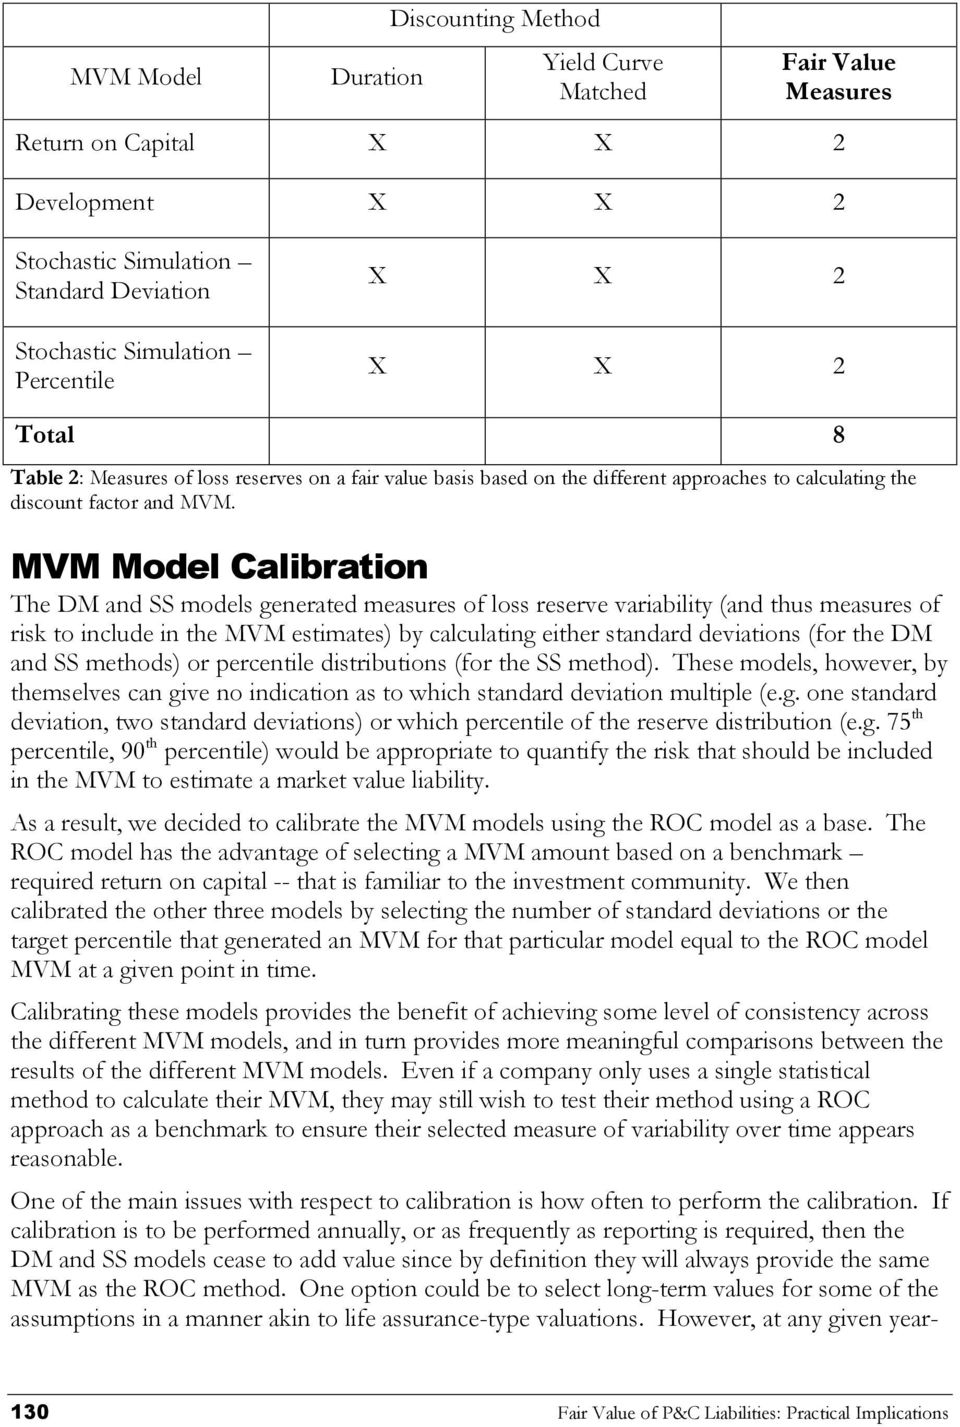 MVM Model Calibration The DM and SS models generated measures of loss reserve variability (and thus measures of risk to include in the MVM estimates) by calculating either standard deviations (for